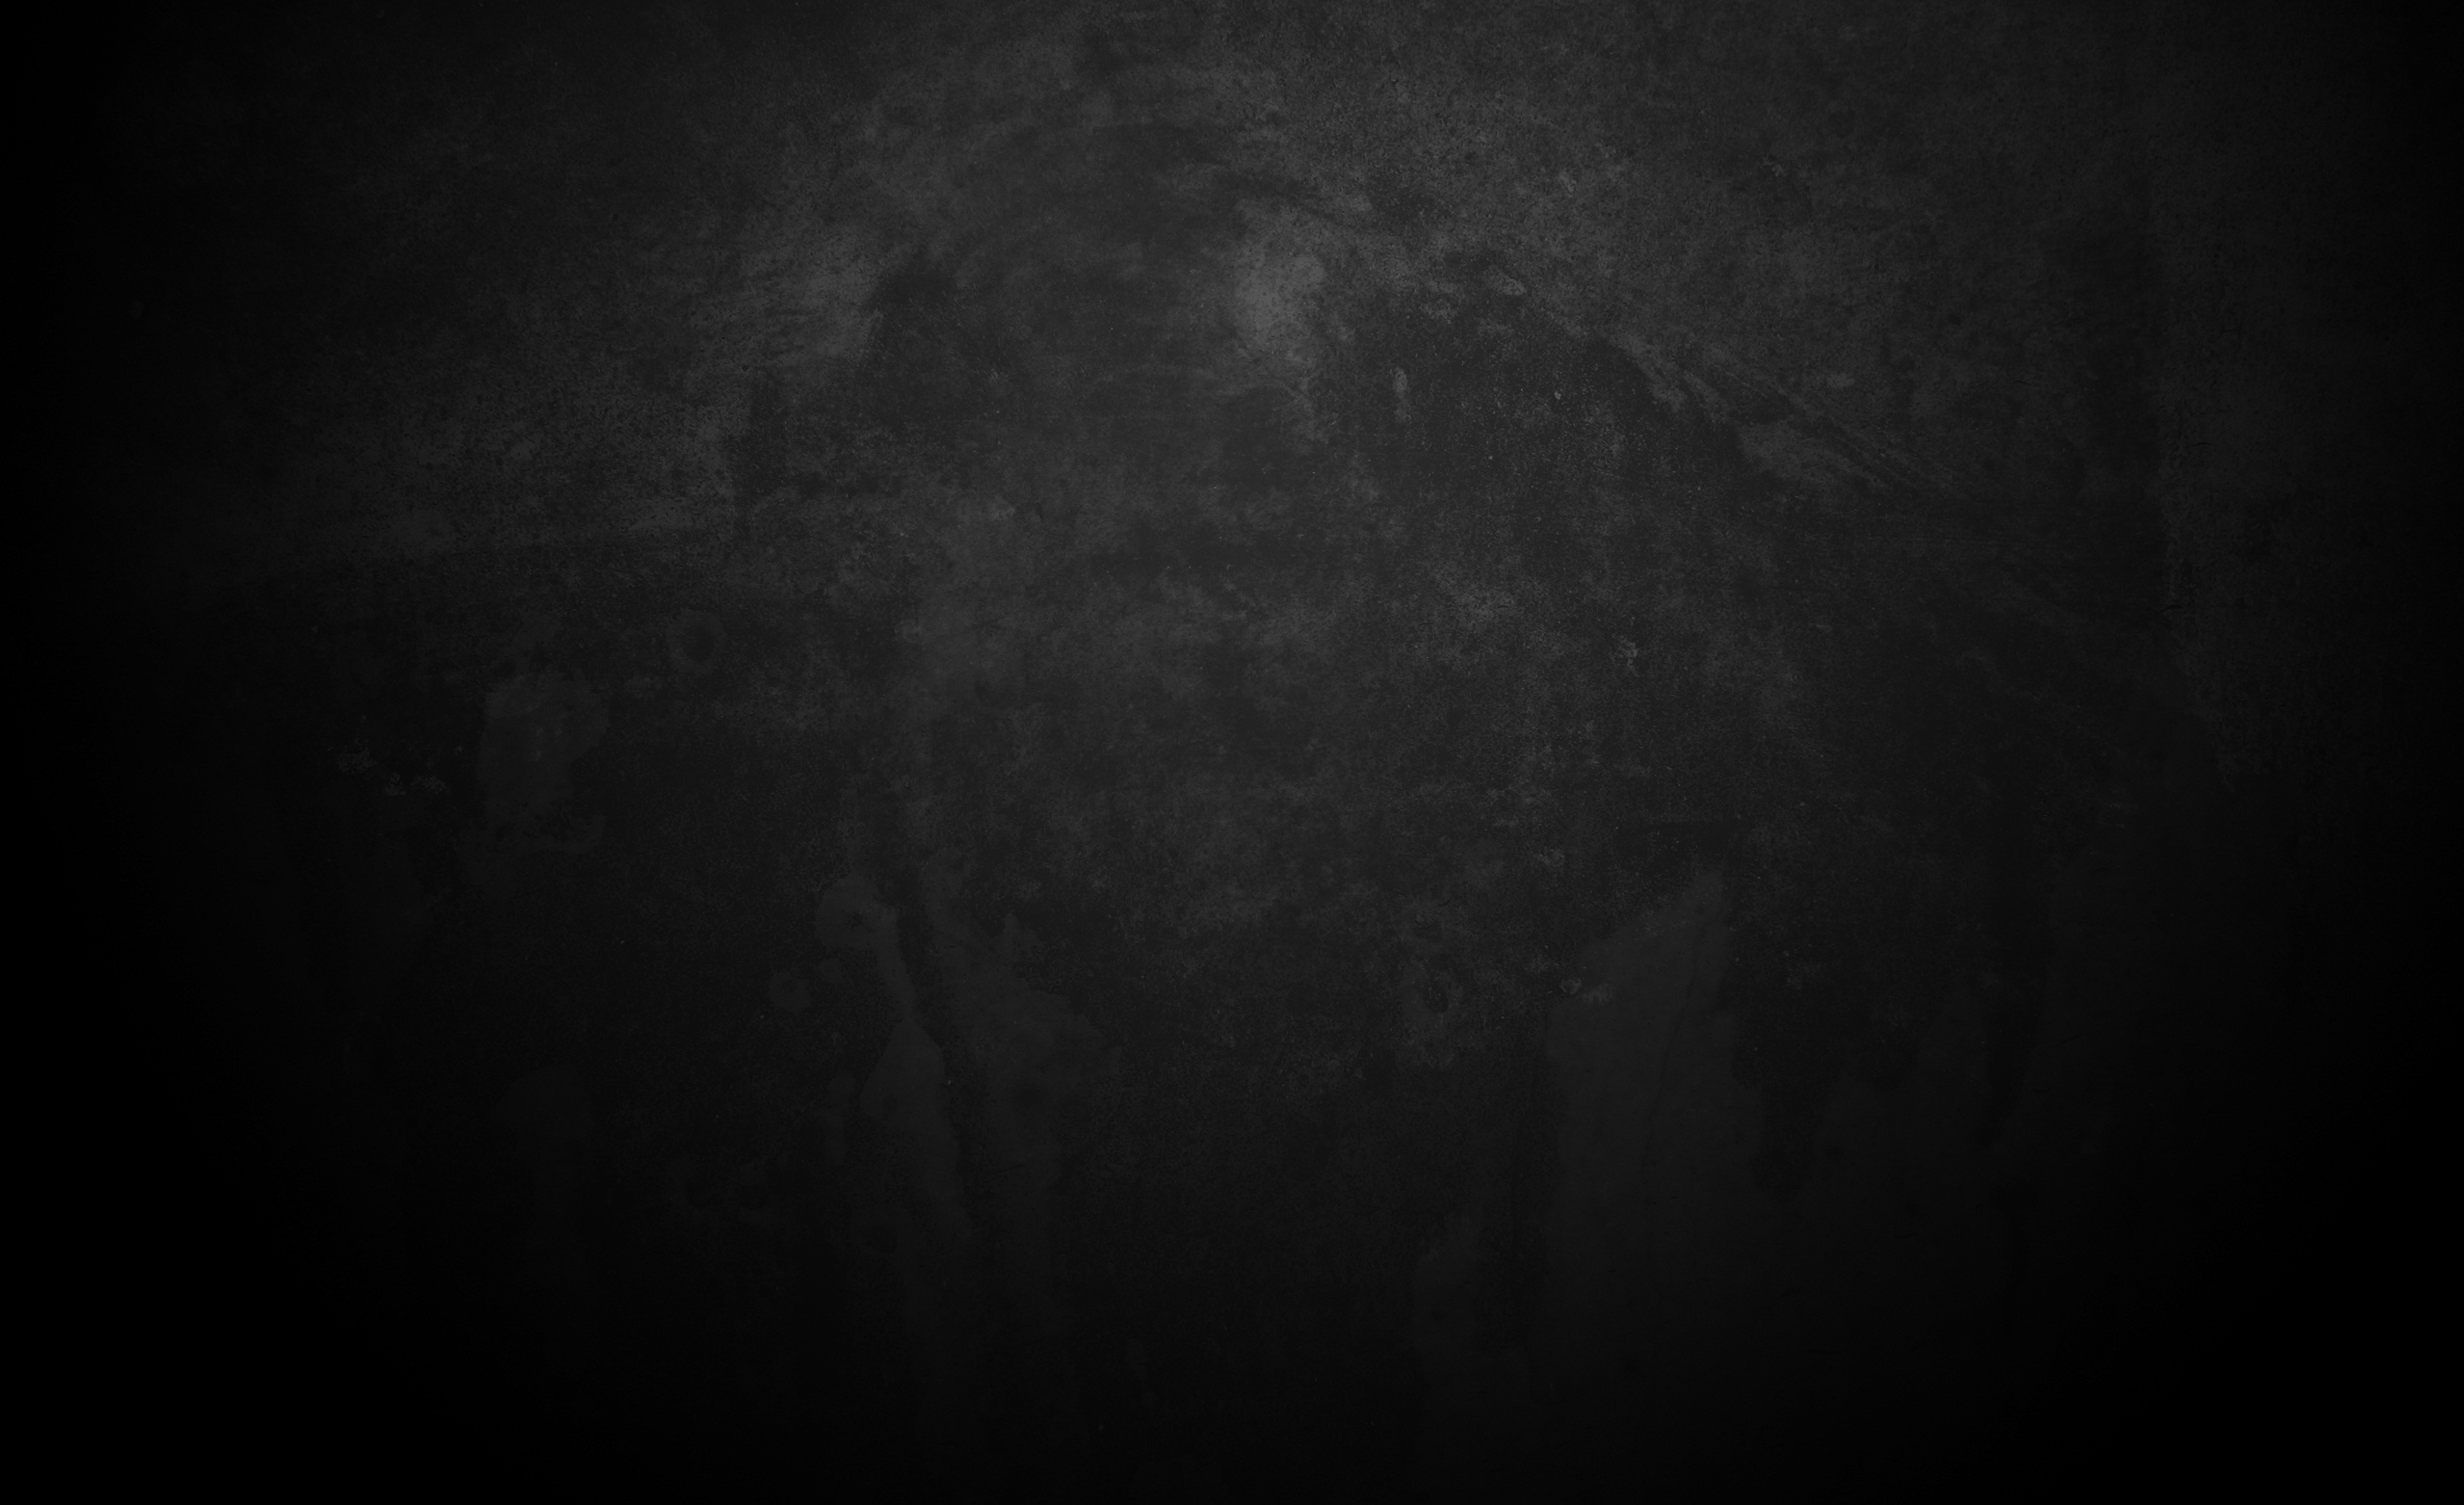 Background for images in photoshop - Black Photoshop Background Png Image 24712